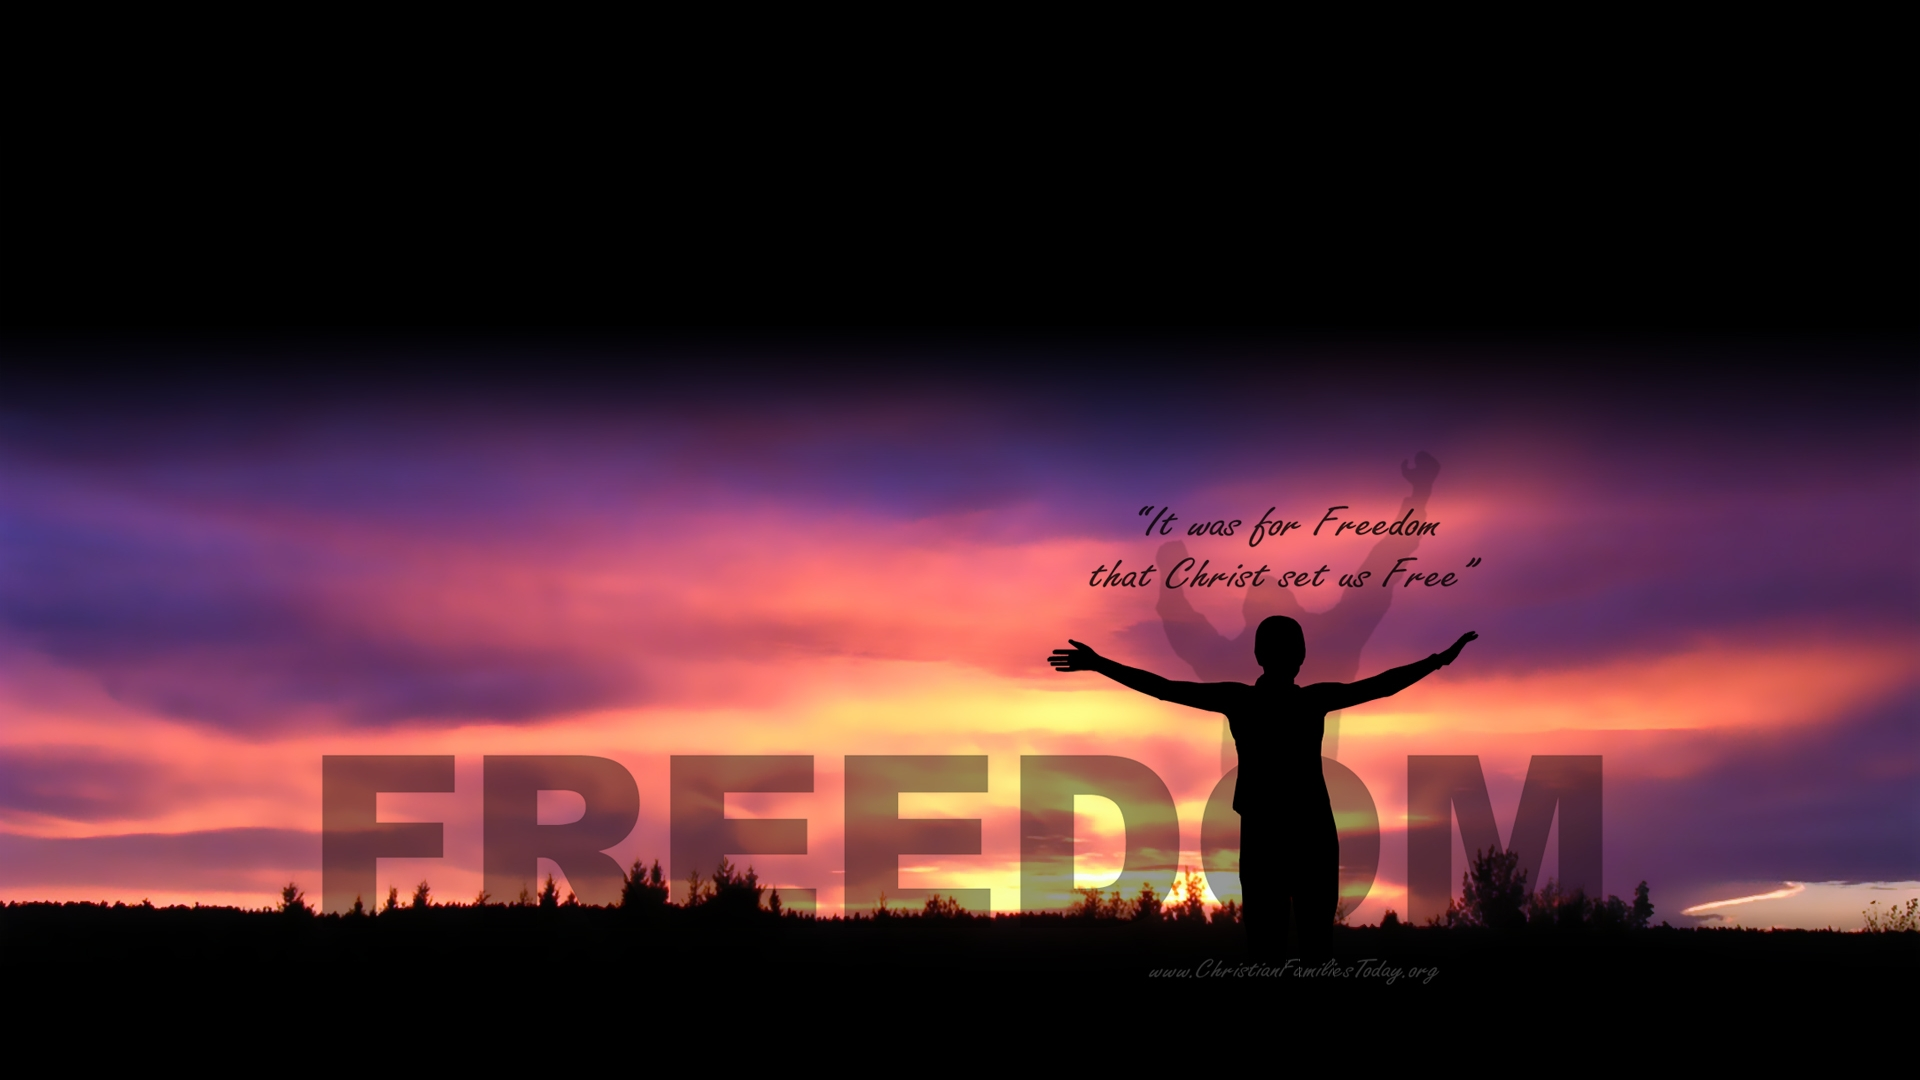 Freedom Wallpaper - Christian Wallpapers and Backgrounds Christian